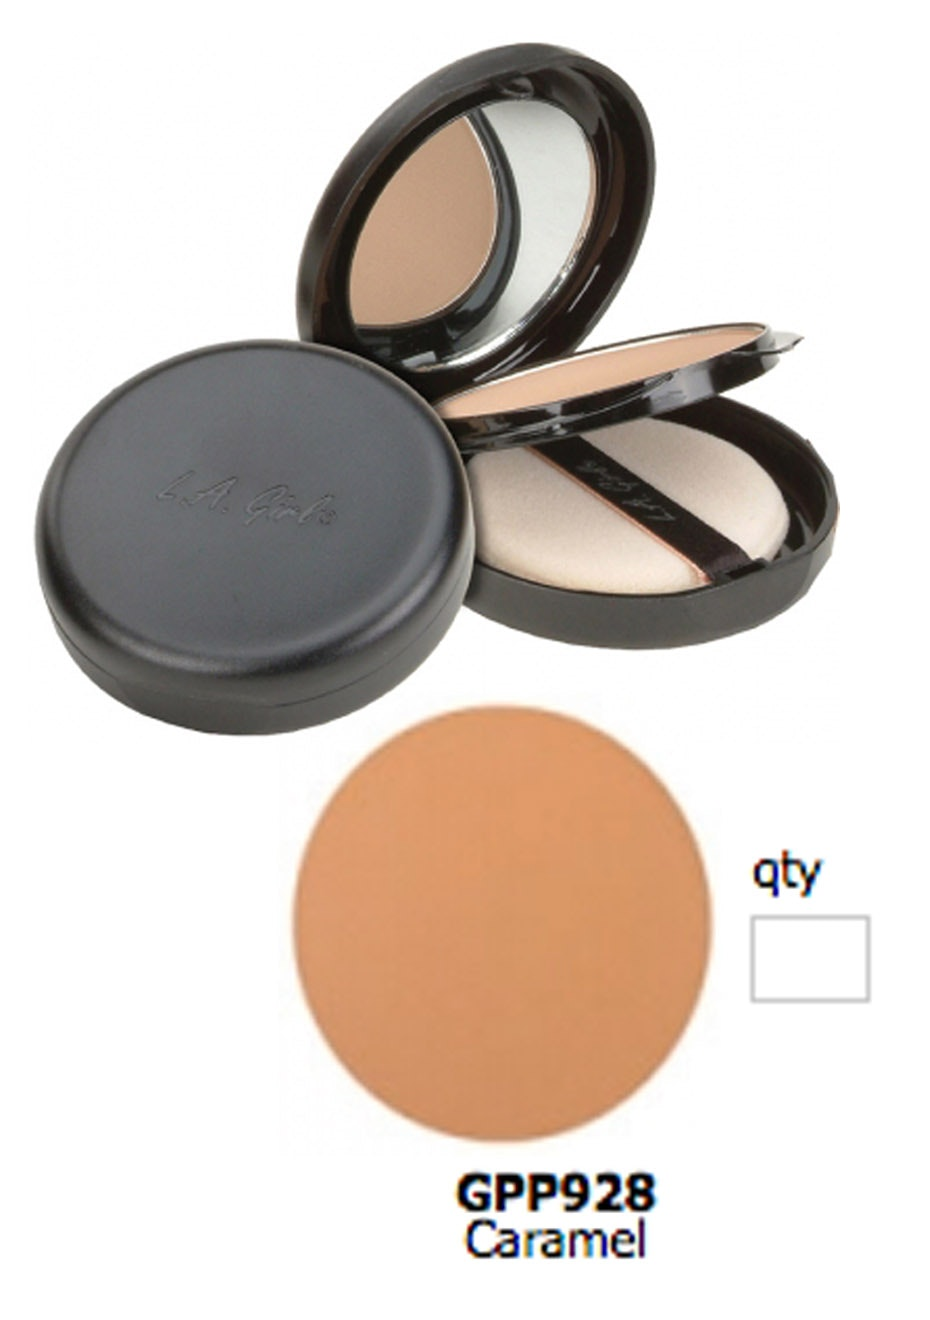 LA Girl Ultimate Pressed Powder - Caramel